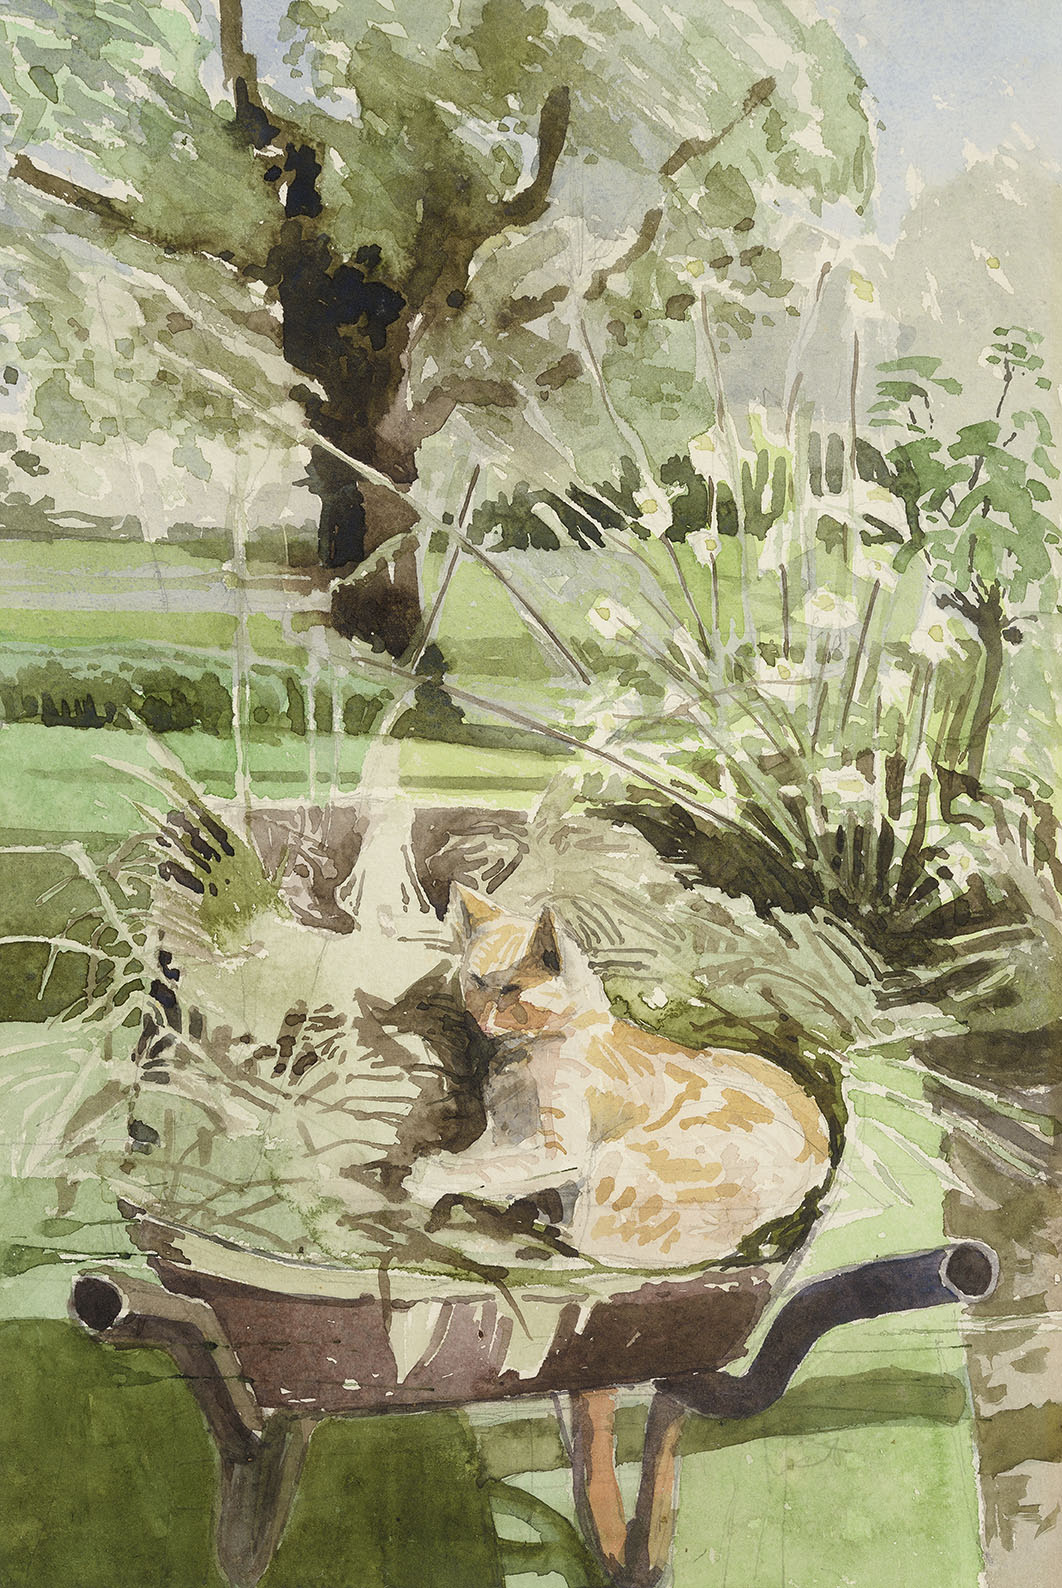 Timothy Holding (b. 1940)    Ruskin in the Barrow,  1978, Watercolour on paper, 14 x 9 ½ in  [CAS 37] Acquired in 1980